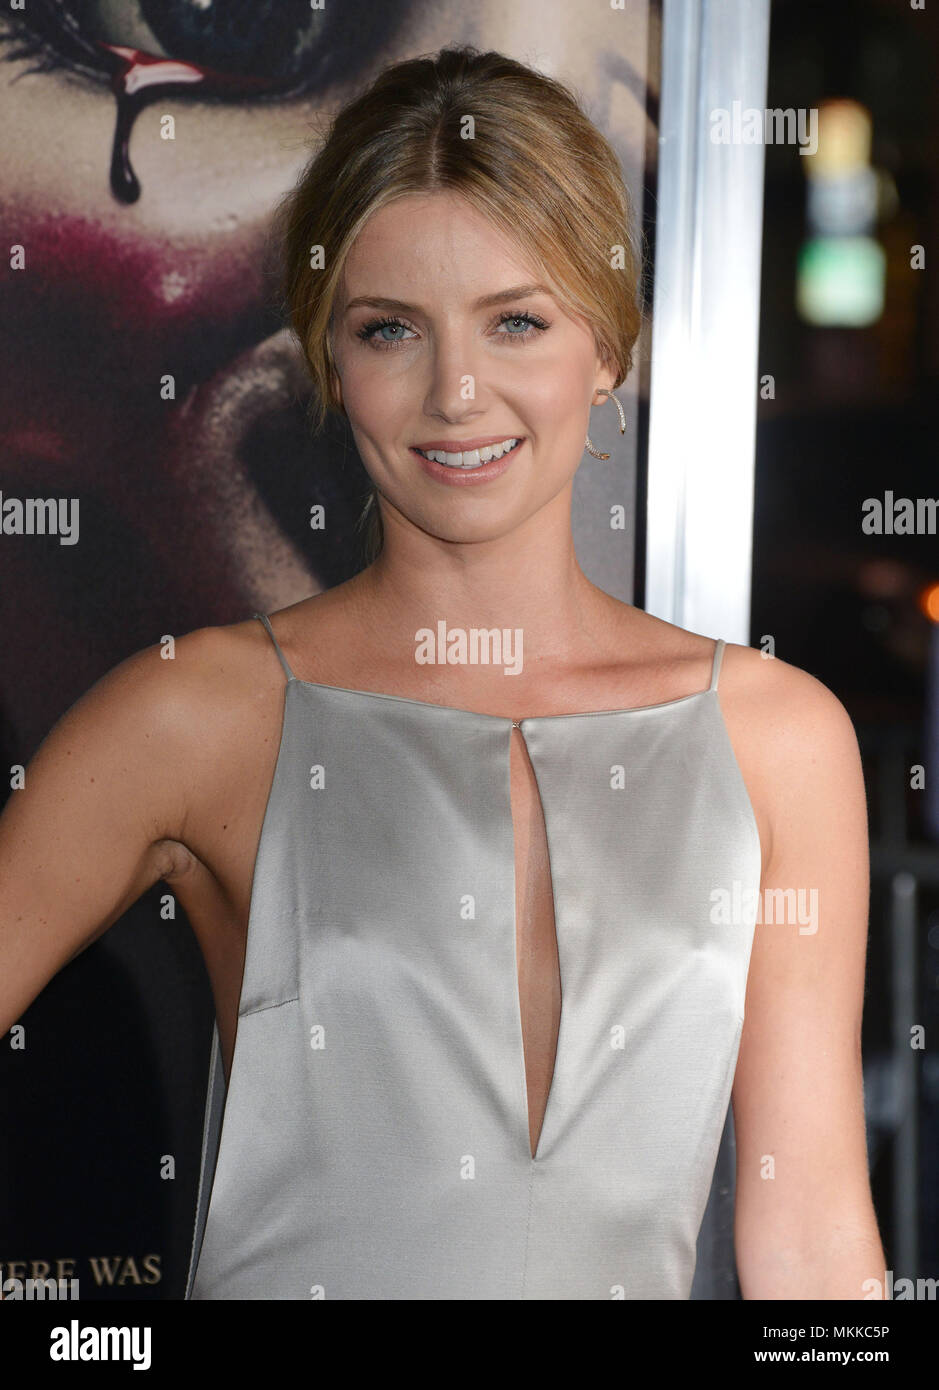 Annabelle Wallis 486 at the Annabelle Premiere at the TCL Chinese Theatre in Los Angeles.Annabelle Wallis 486 Red Carpet Event, Vertical, USA, Film Industry, Celebrities,  Photography, Bestof, Arts Culture and Entertainment, Topix Celebrities fashion /  Vertical, Best of, Event in Hollywood Life - California,  Red Carpet and backstage, USA, Film Industry, Celebrities,  movie celebrities, TV celebrities, Music celebrities, Photography, Bestof, Arts Culture and Entertainment,  Topix, headshot, vertical, one person,, from the year , 2014, inquiry tsuni@Gamma-USA.com - Stock Image